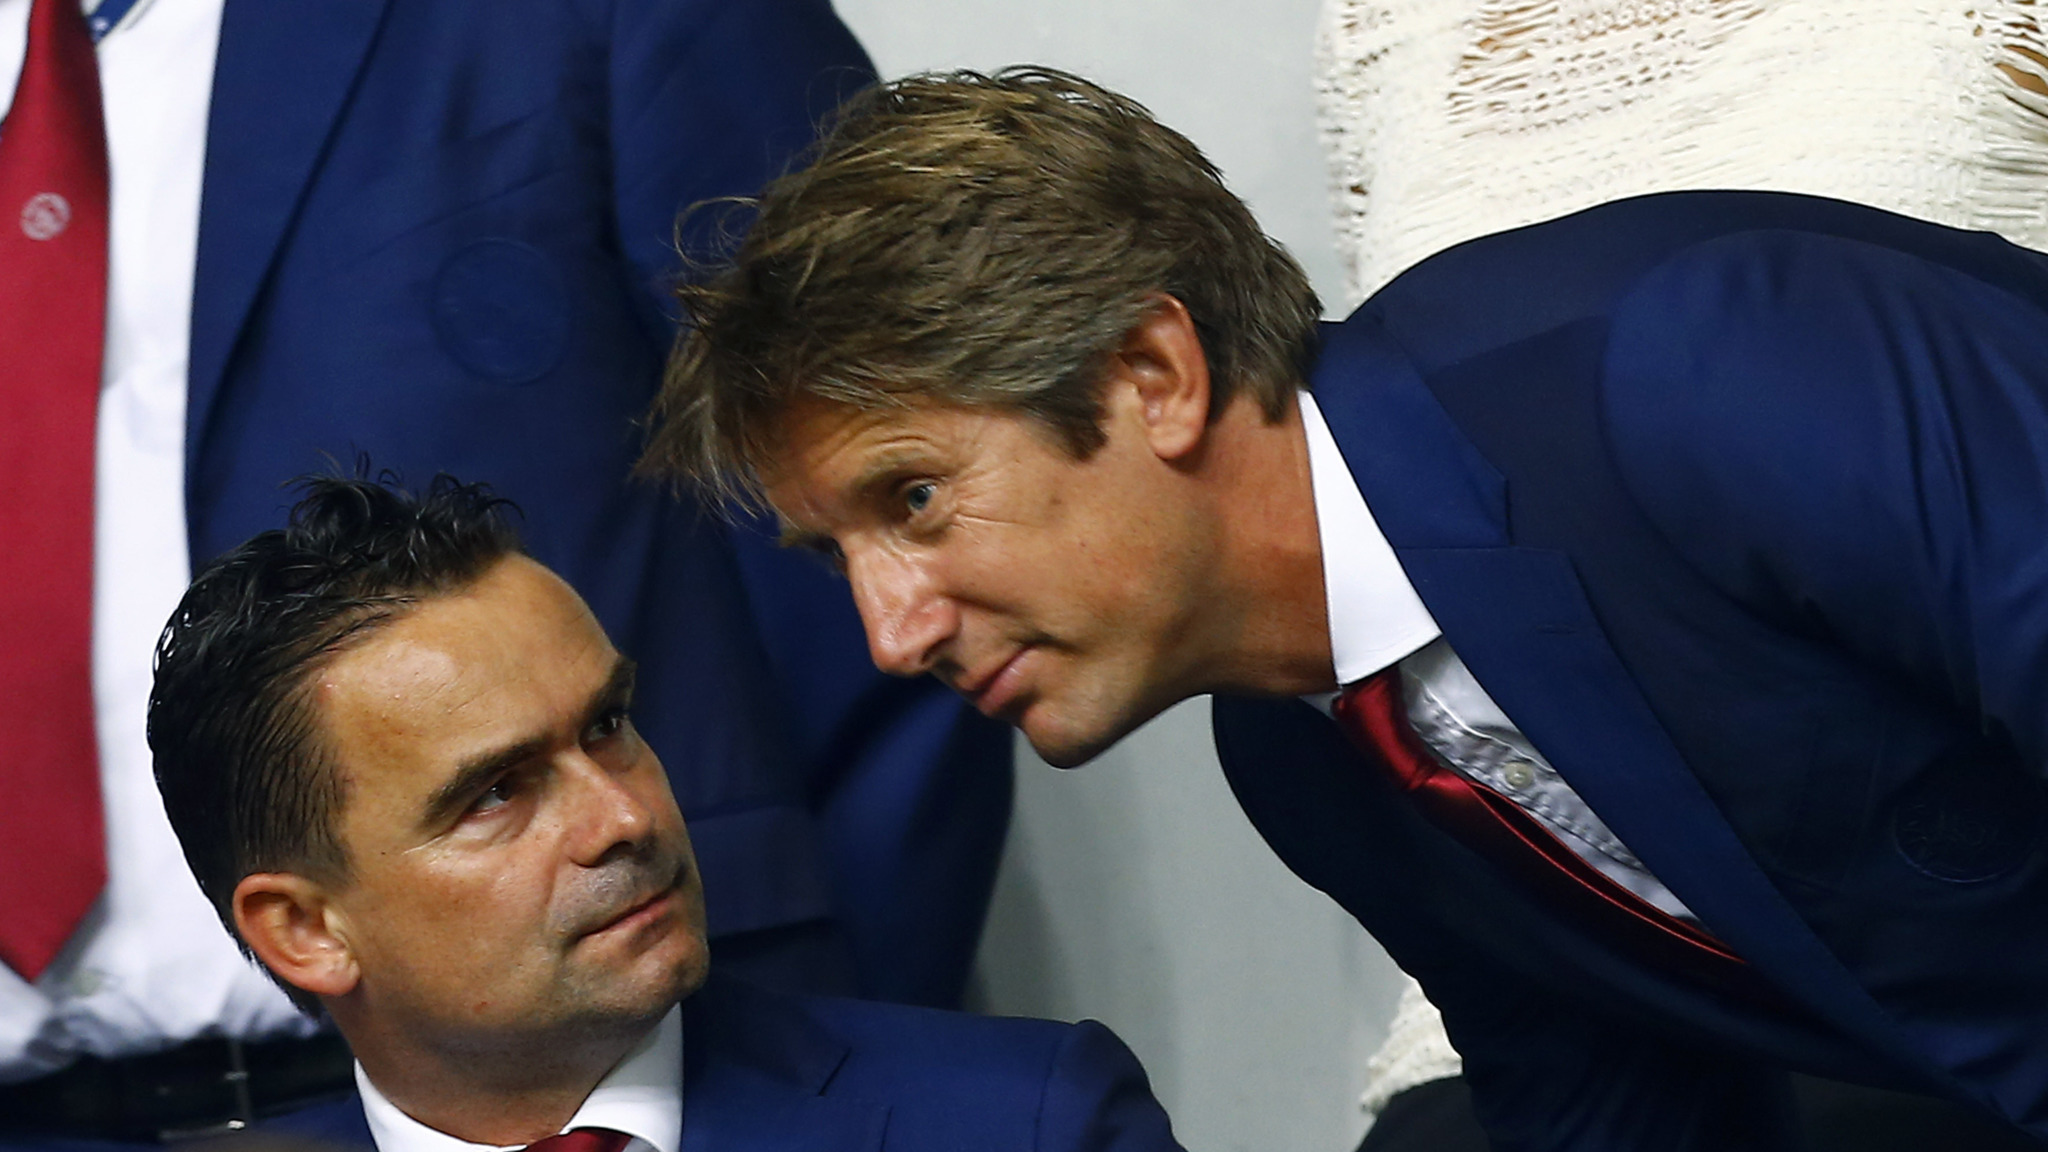 Ajax legends Marc Overmars (left) and Edwin Van Der Sar: kingmakers at the Johan Cruyff Arena